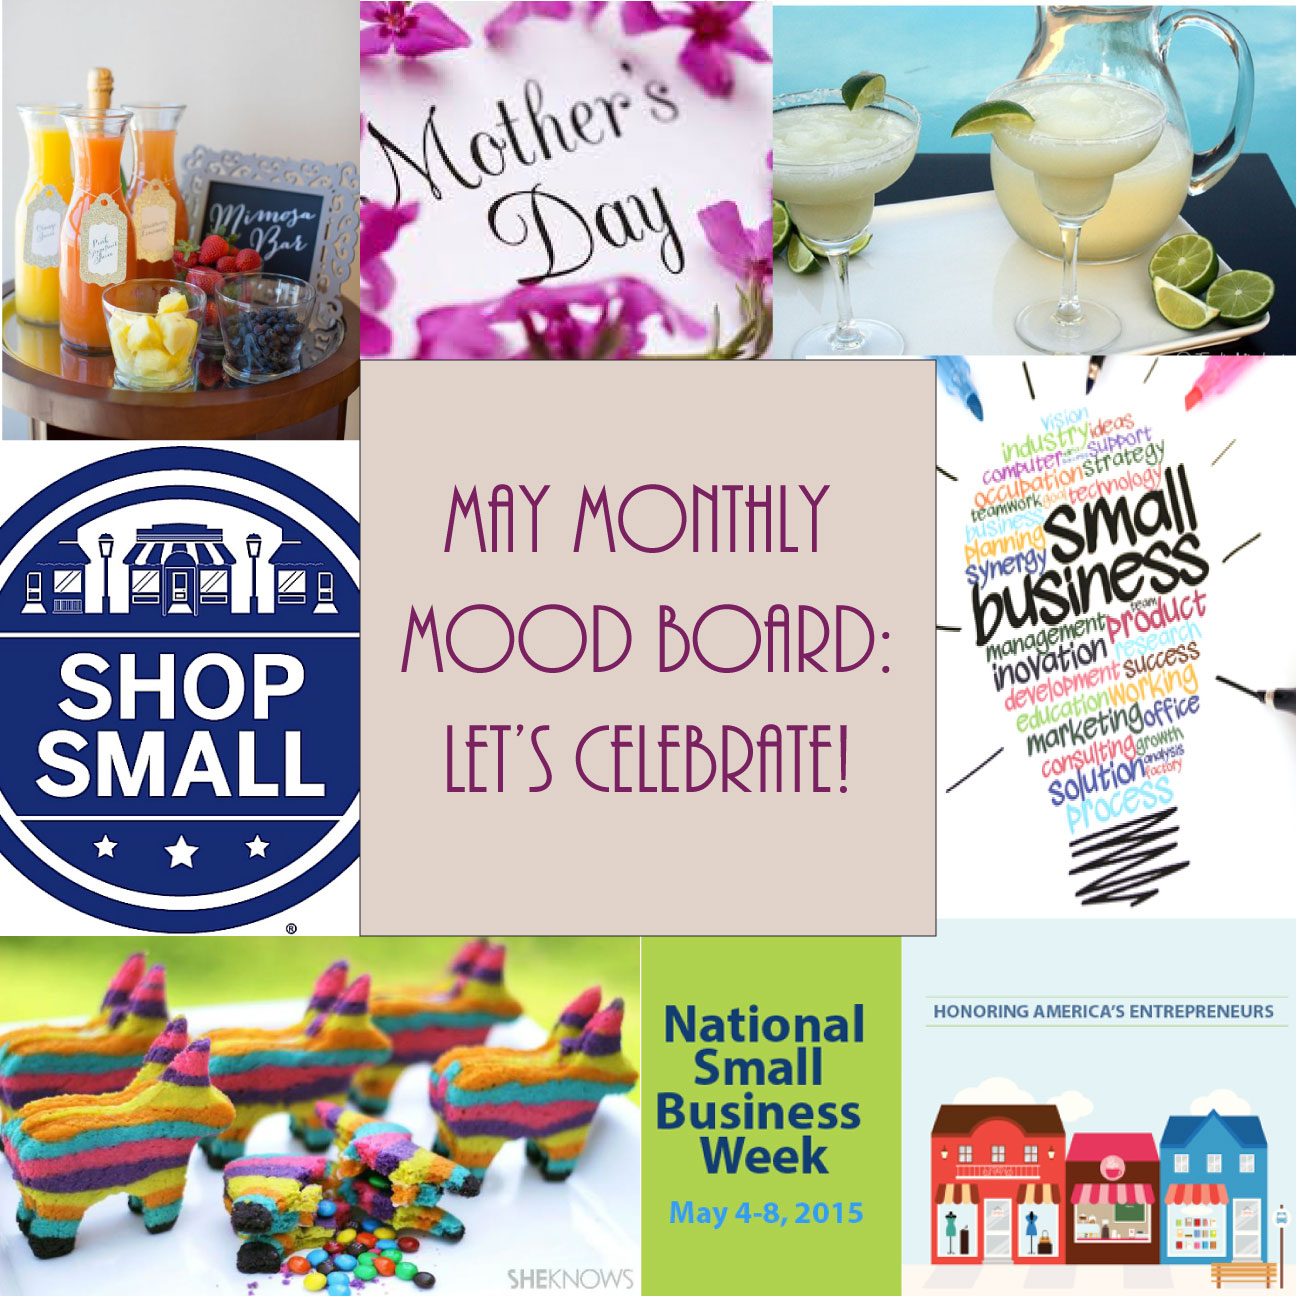 Let's Celebrate! - May Monthly Mood Board - F.I.N.D.S. Blog